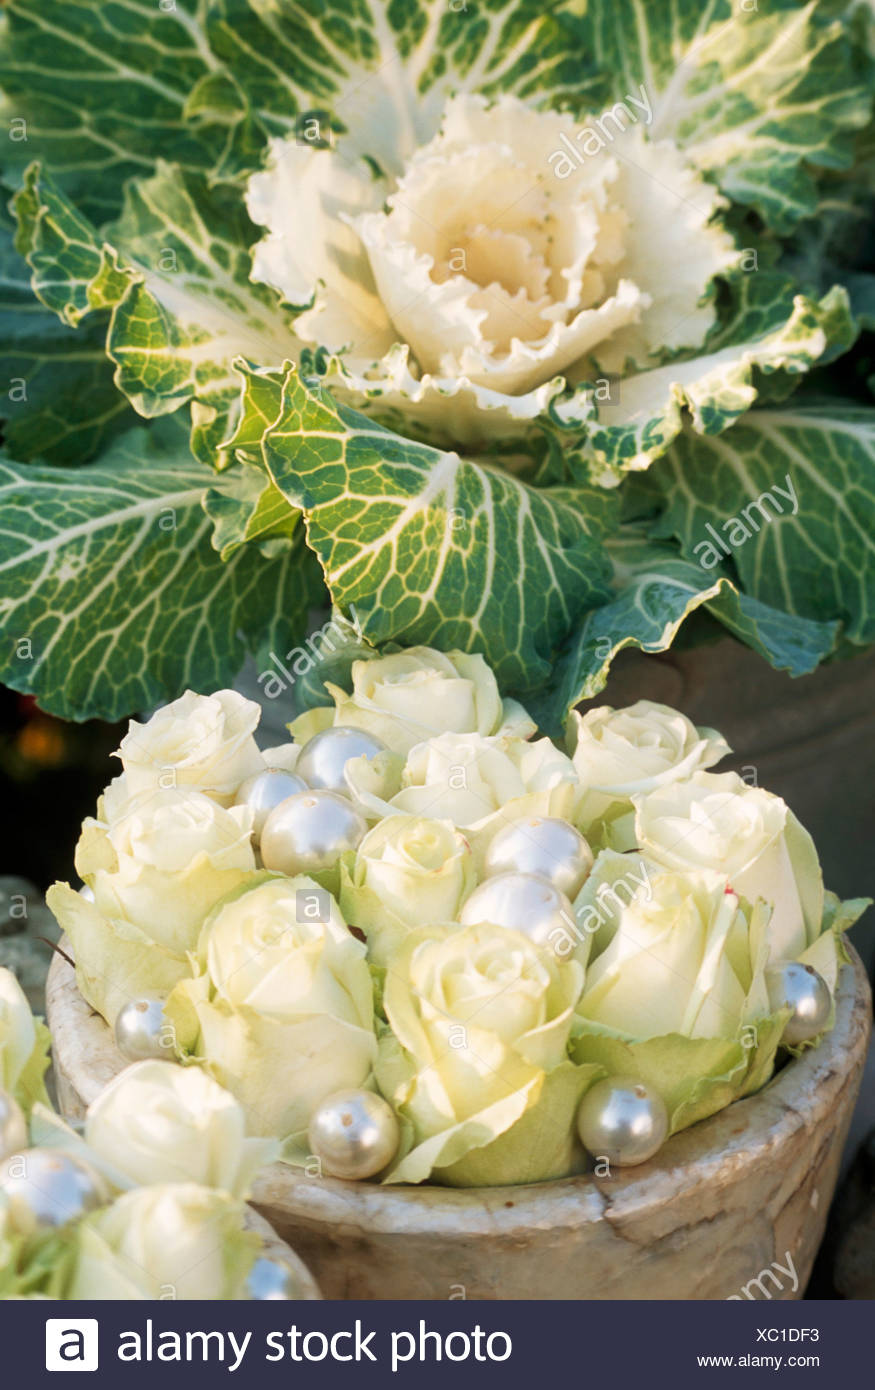 cabbage roses photos & cabbage roses images - alamy